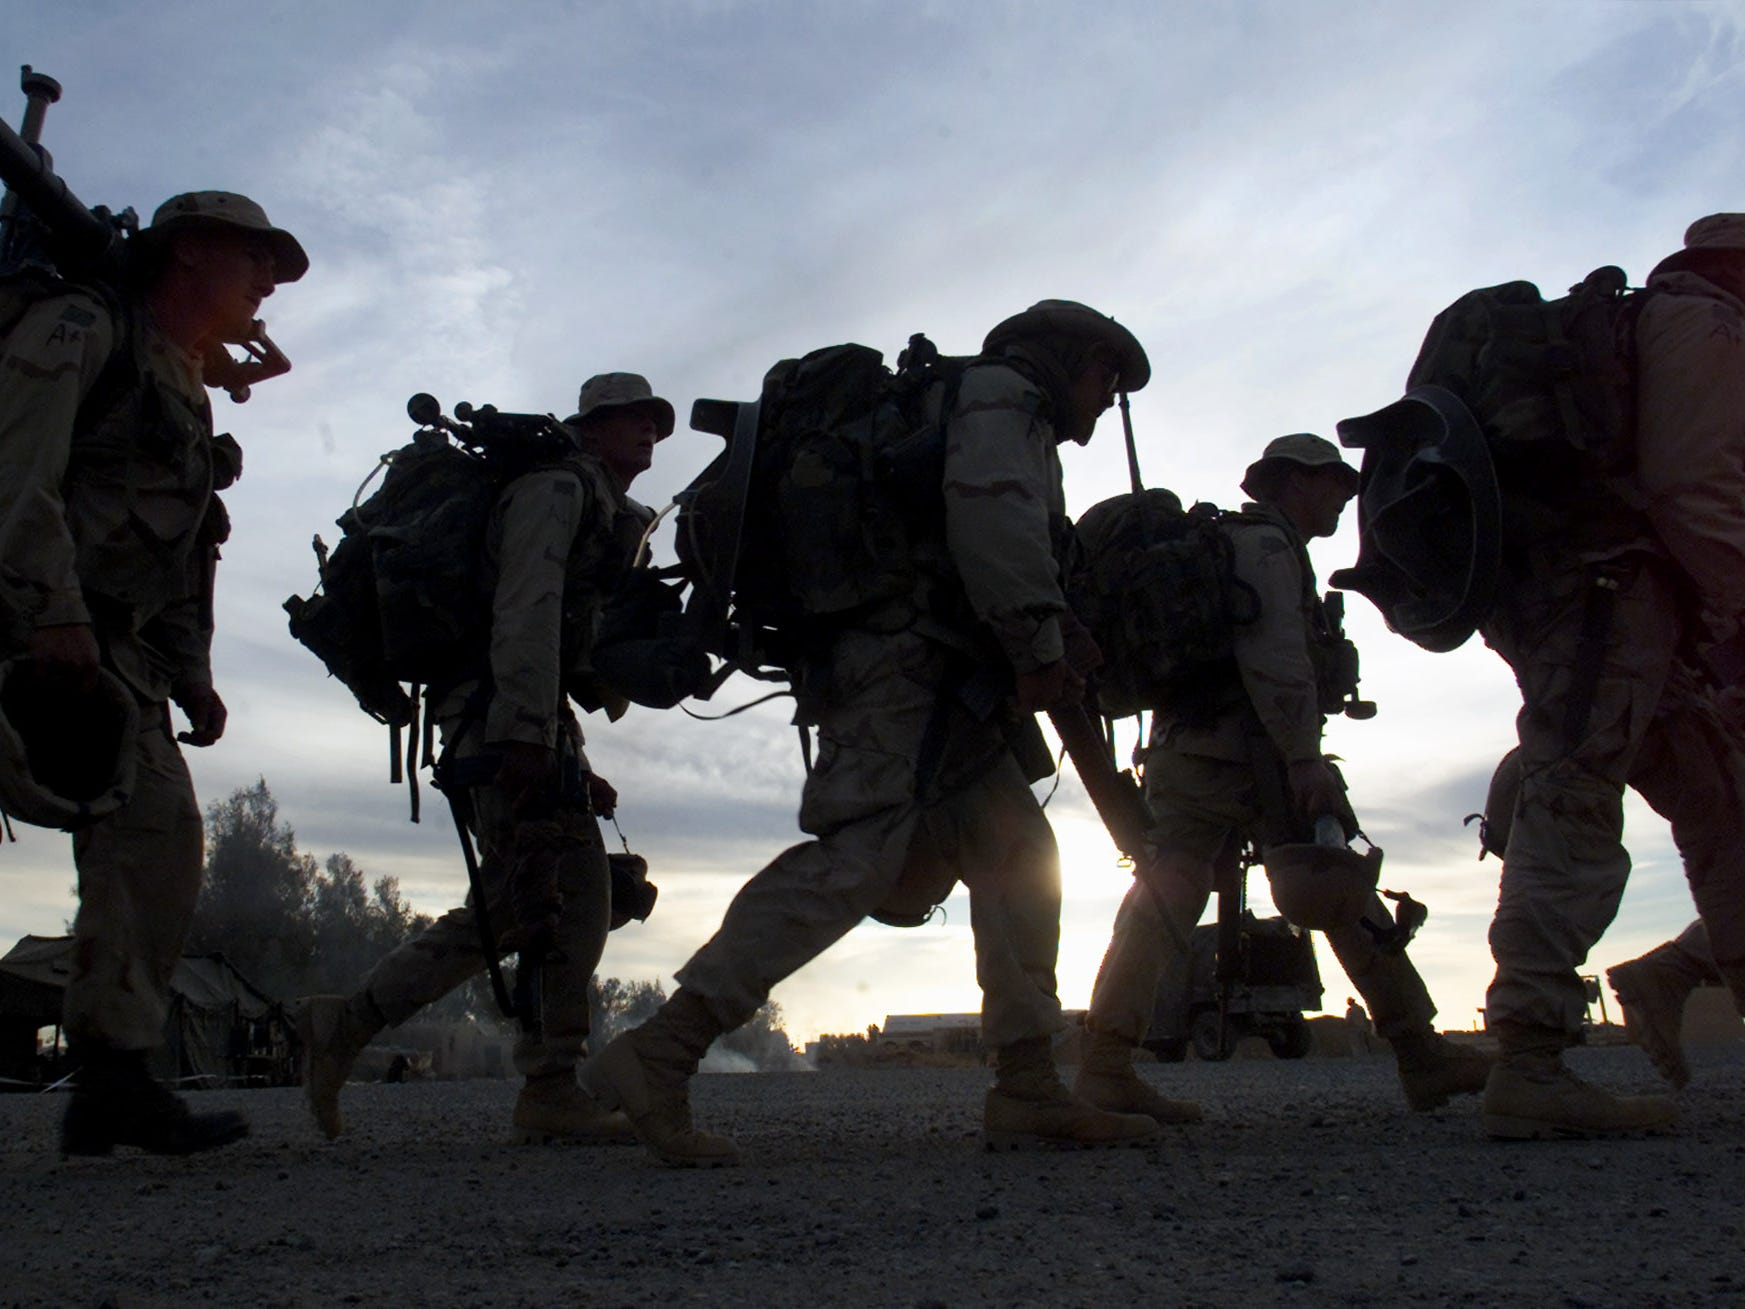 Betrayer in chief? Pardoning troops accused or convicted of murder would wound military